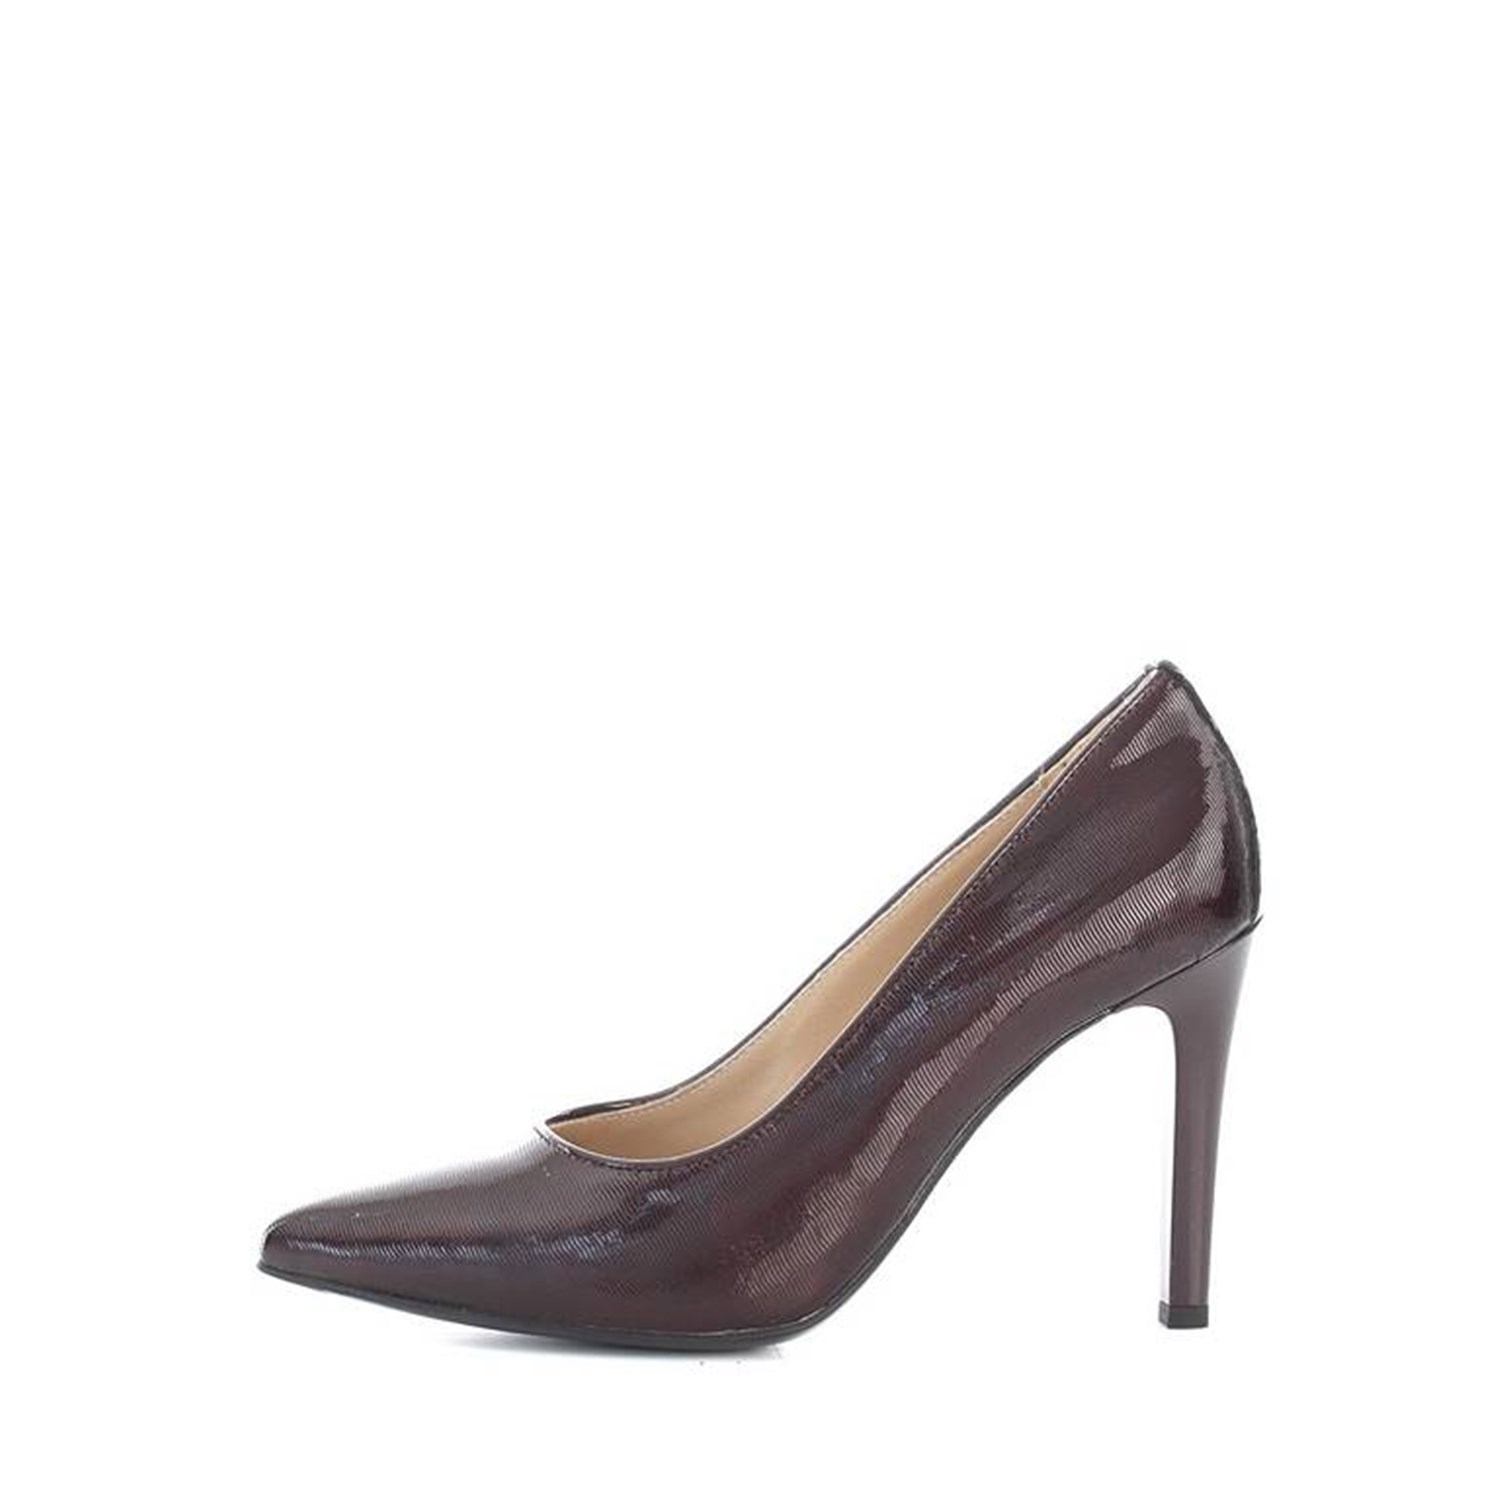 Nero Giardini Shoes Woman Decolletè BORDEAUX A719711DE